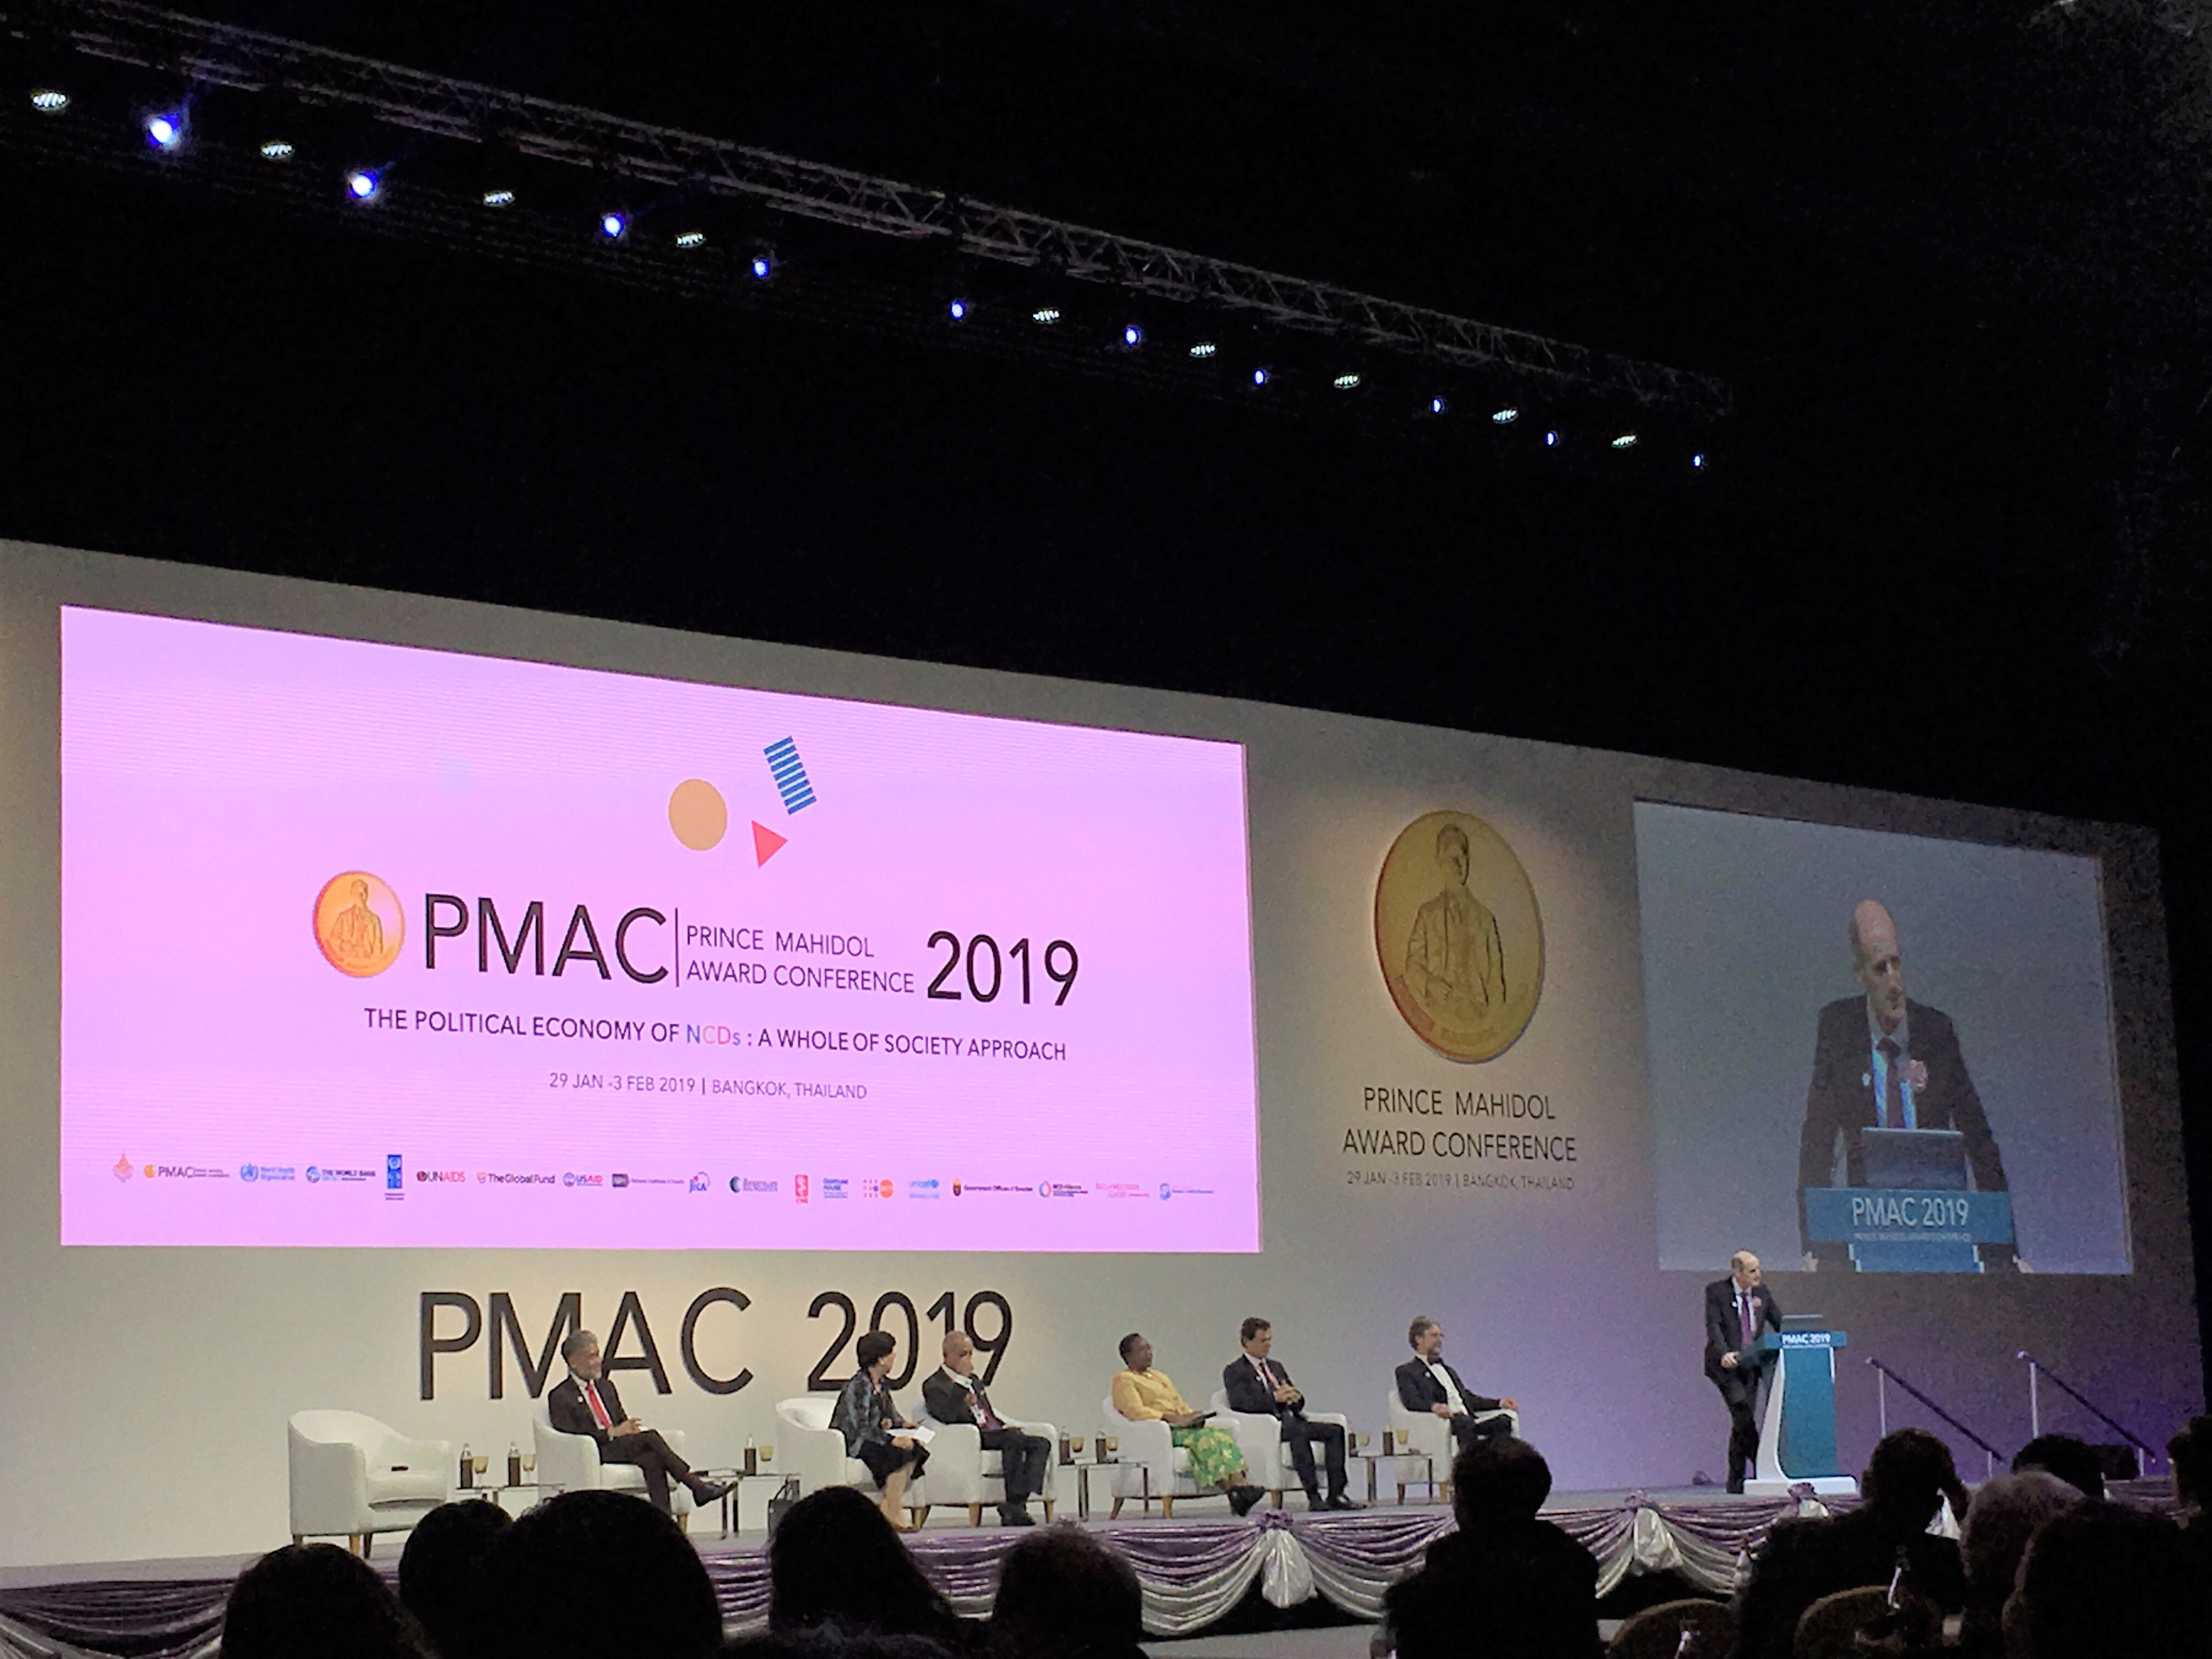 [Event Report] Attends Prince Mahidol Award Conference 2019, Held on the Theme of Non-Communicable Diseases (NCDs)(January 29 – February 3, 2019)